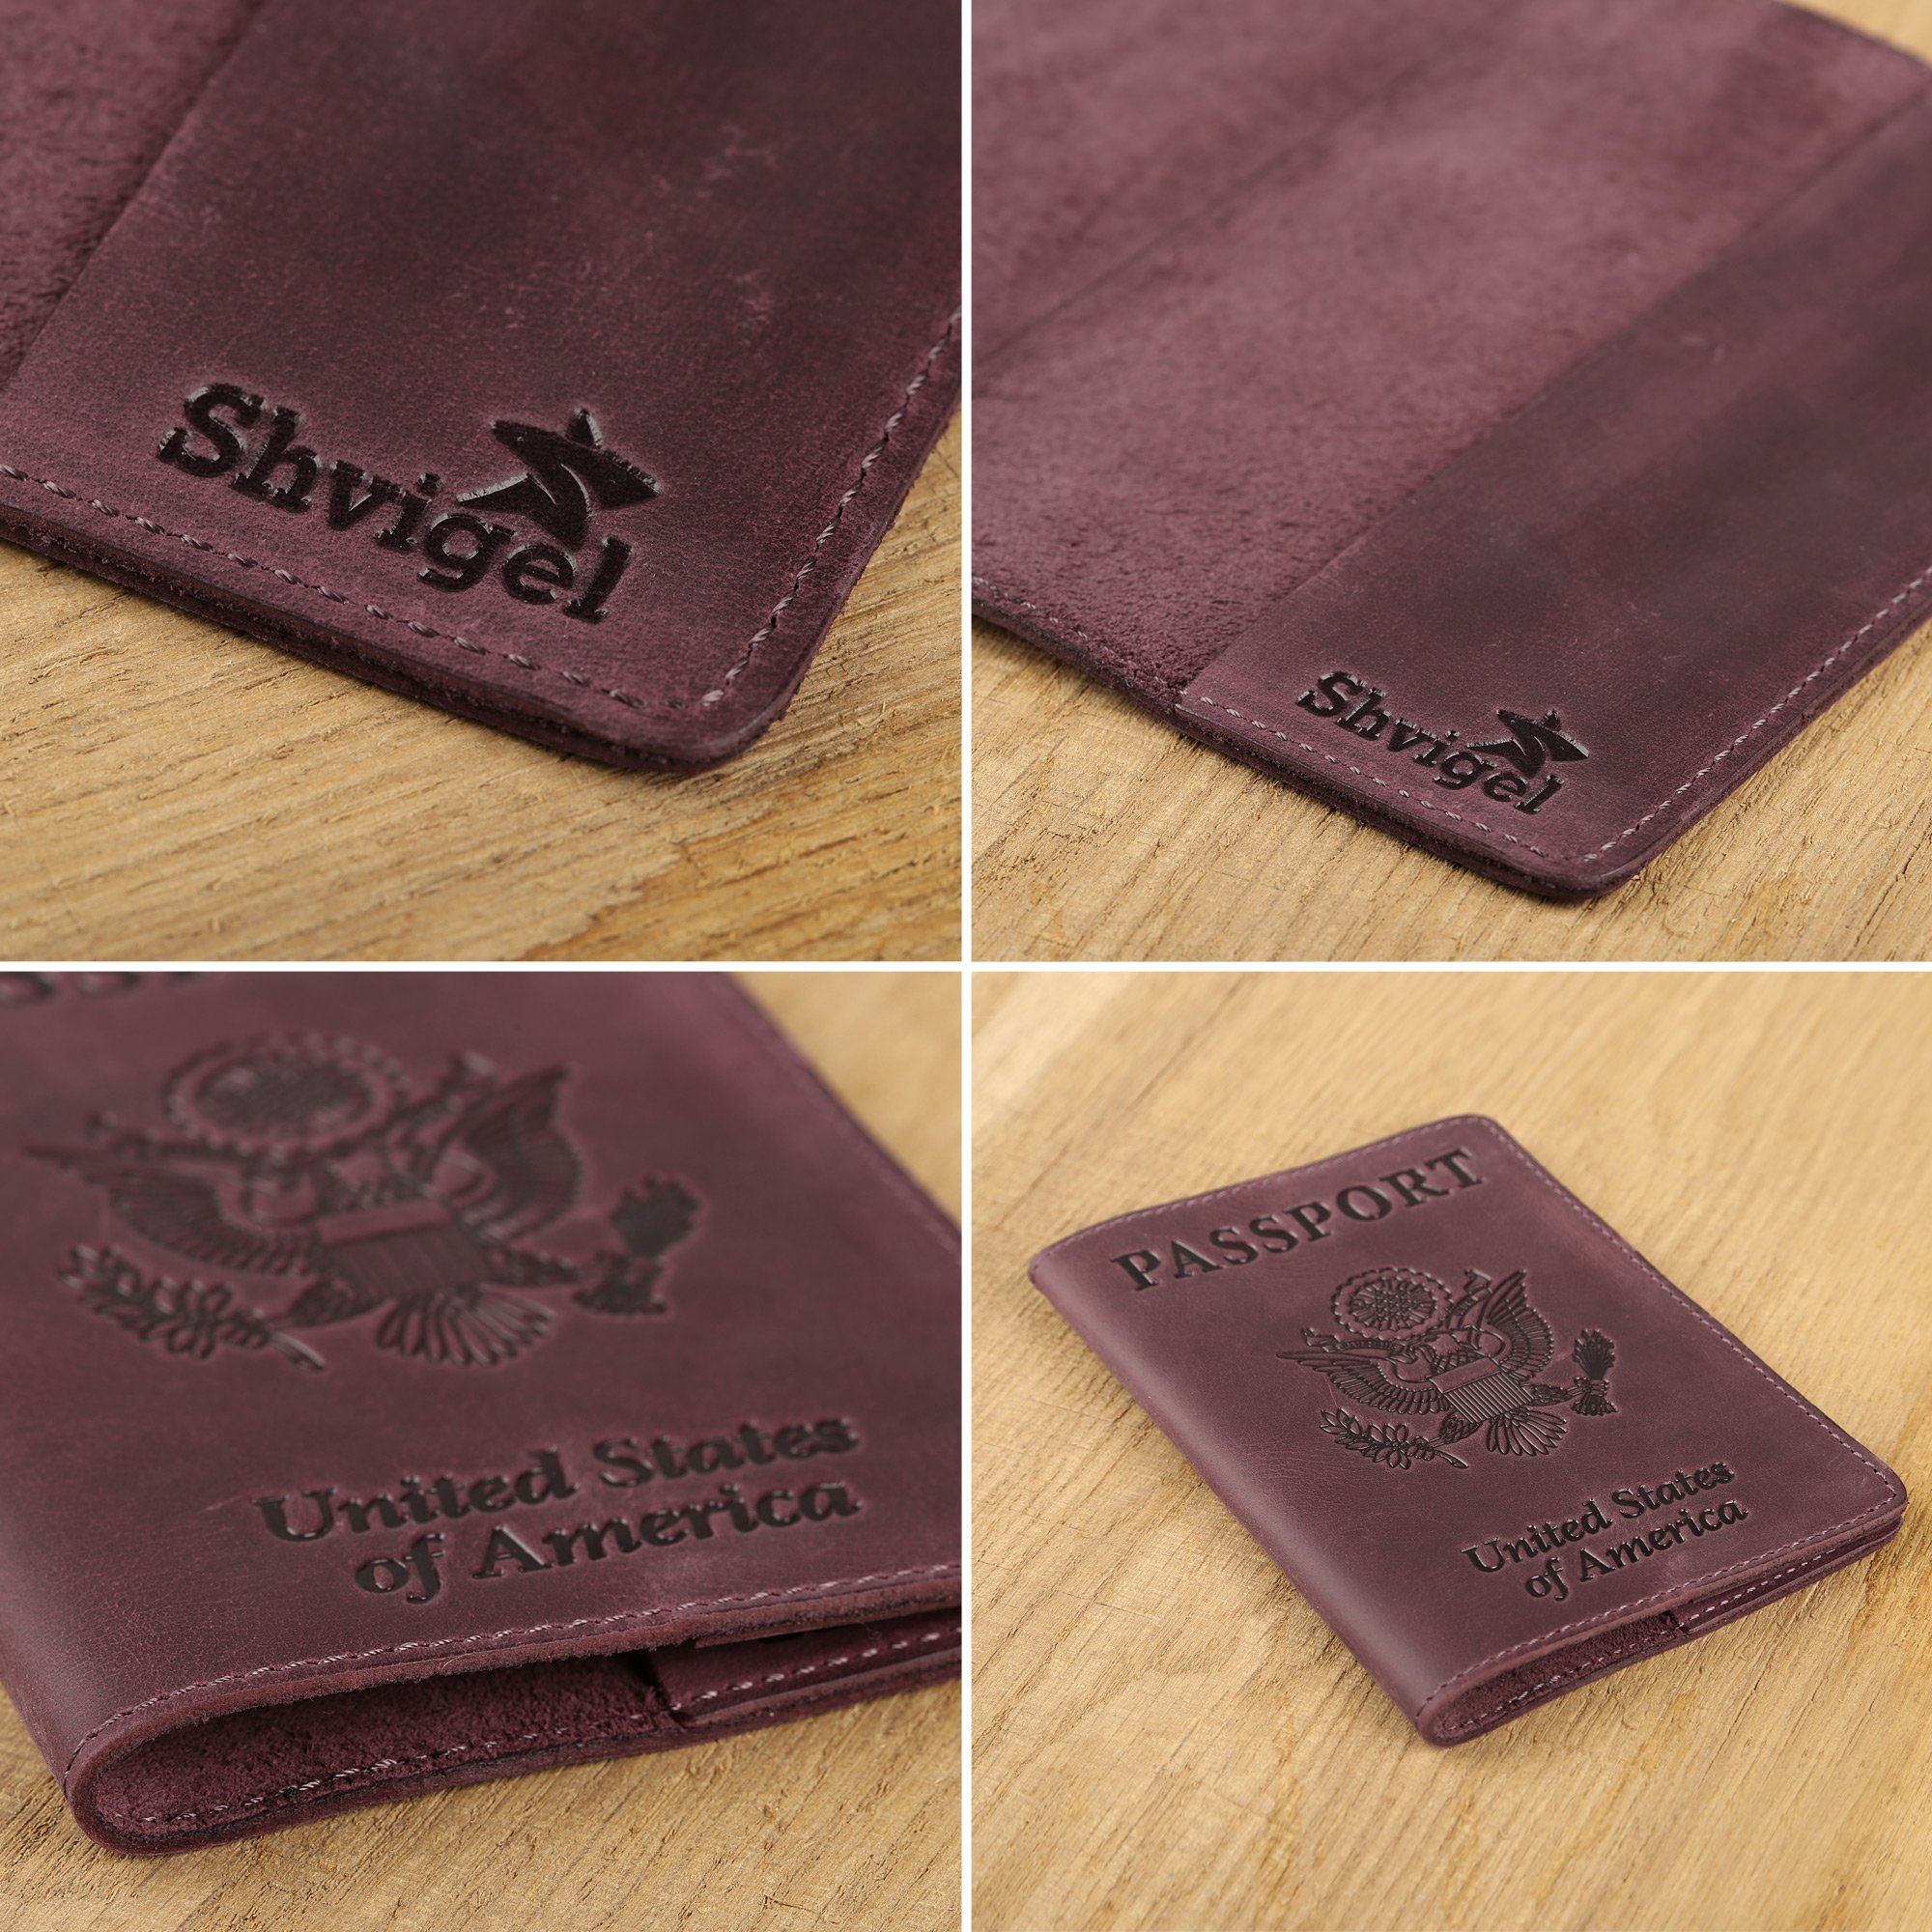 Shvigel Leather Passport Cover - Holder - for Men & Women - Passport Case (Maroon Vintage) by Shvigel (Image #4)